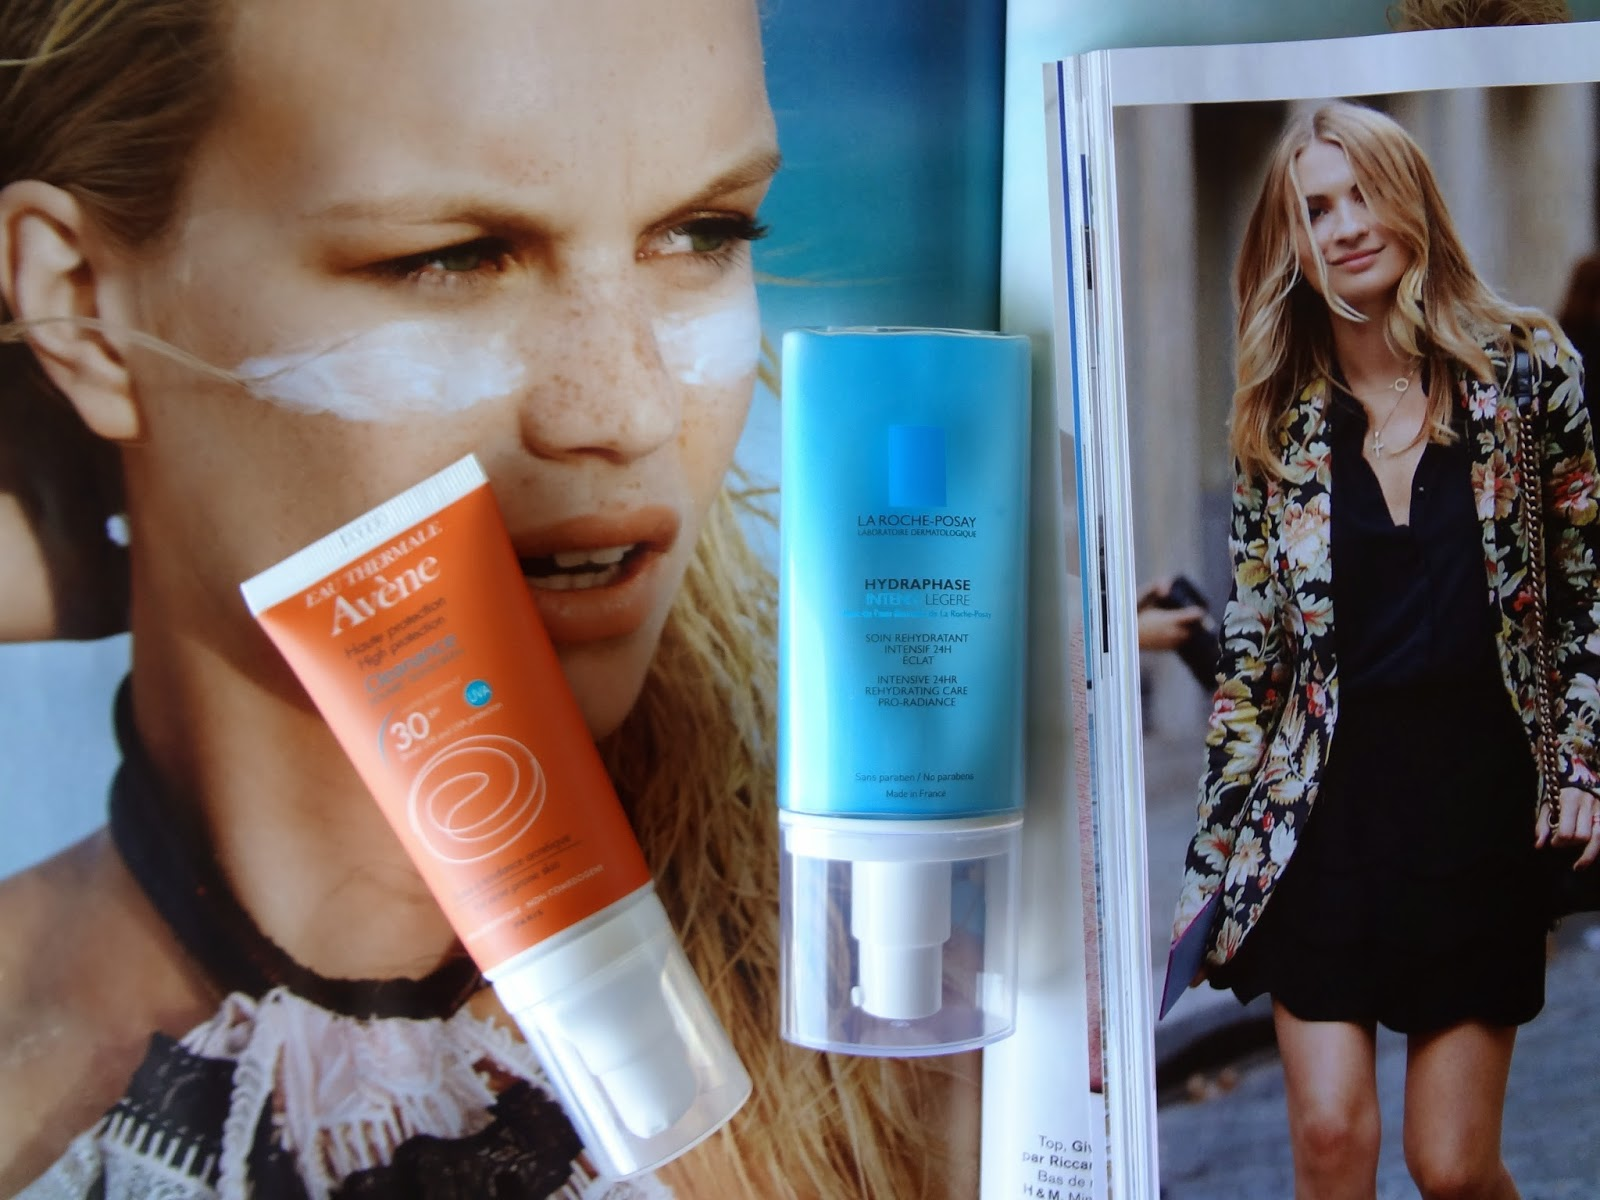 skincare-haul-revue-review-soins-achats-peau-avene-cleanance-solaire-spf30-peau-acneique-boutons-solaire-acne-protection-solaire-roche-posay-hydraphase-intense-legere-hydratant-visage